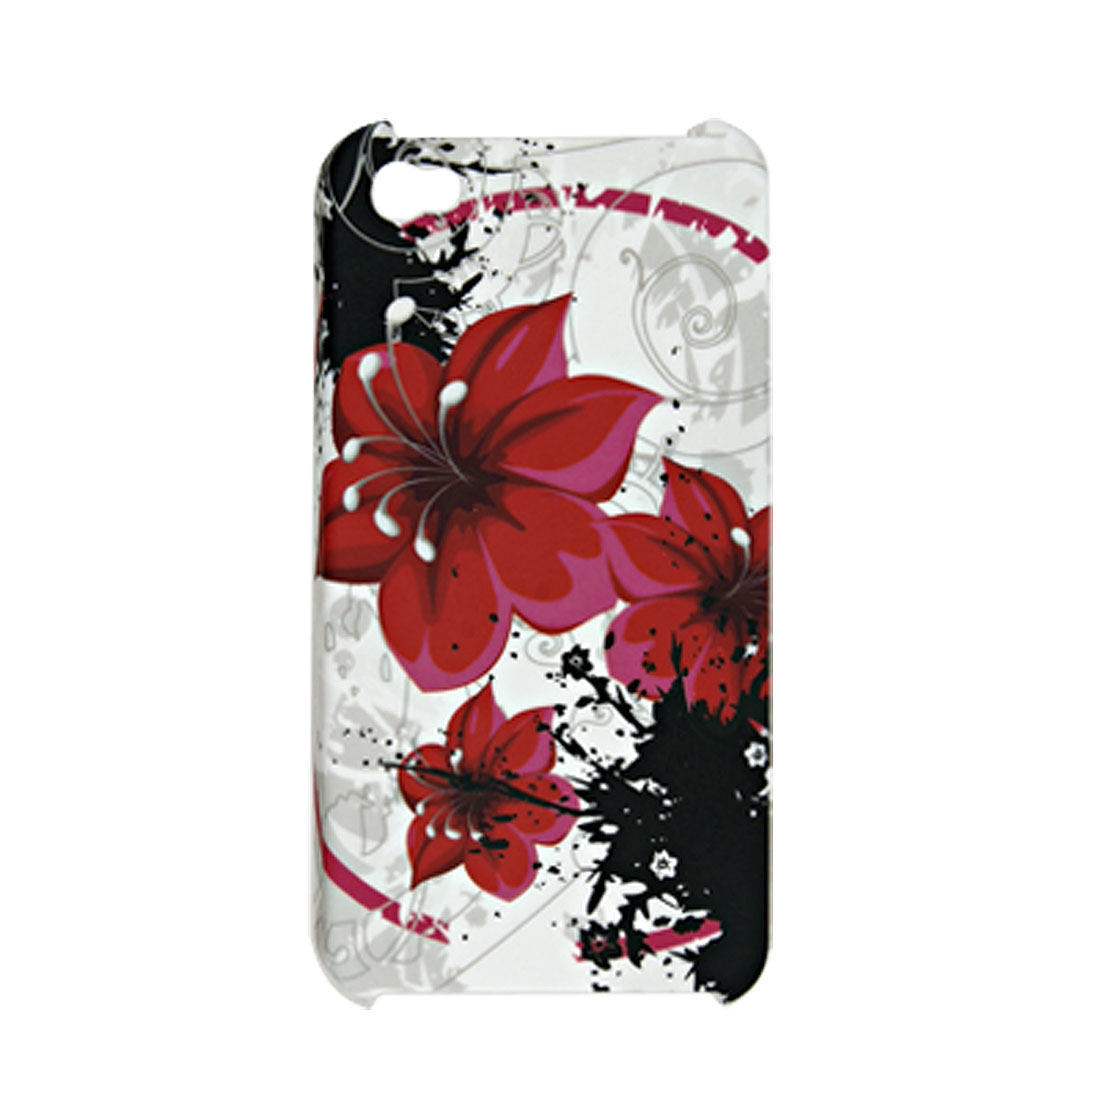 Fuchsia Red Flowers Rubberized Plastic Back Cover for iPhone 4 4G